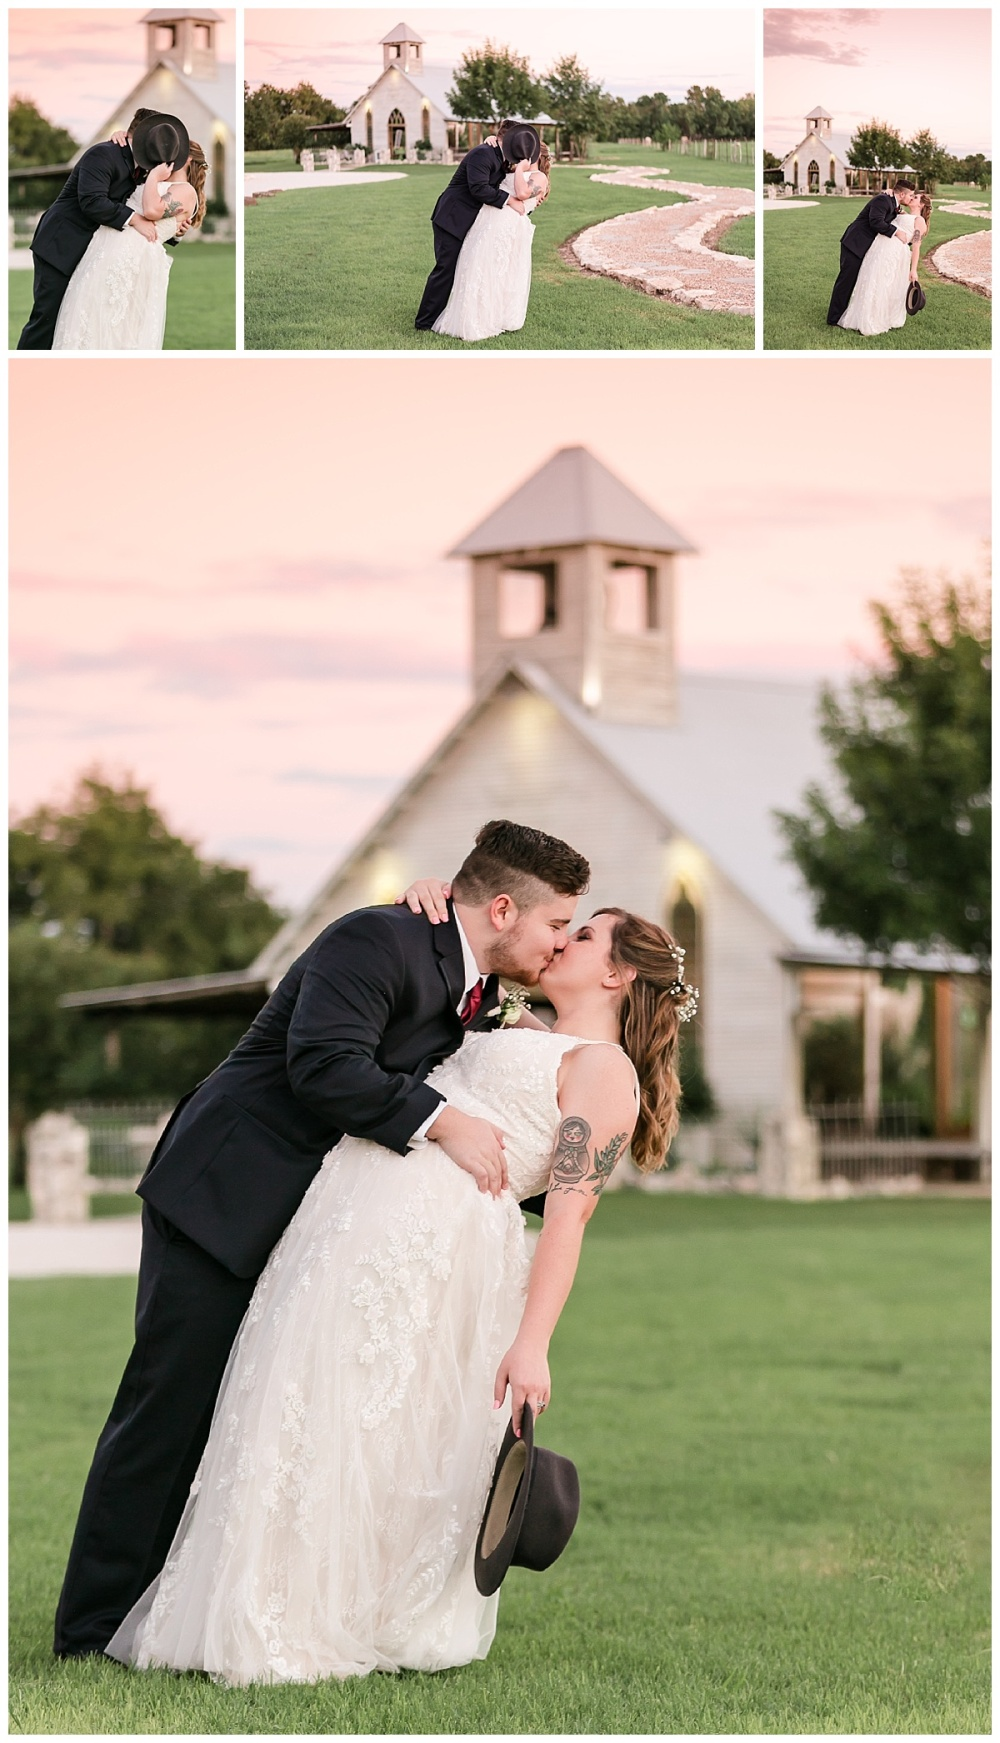 Texas-Wedding-Photographer-Gruene-Estate-Open-Air-Chapel-Carly-Barton-Photography-Katie-Nic_0063.jpg